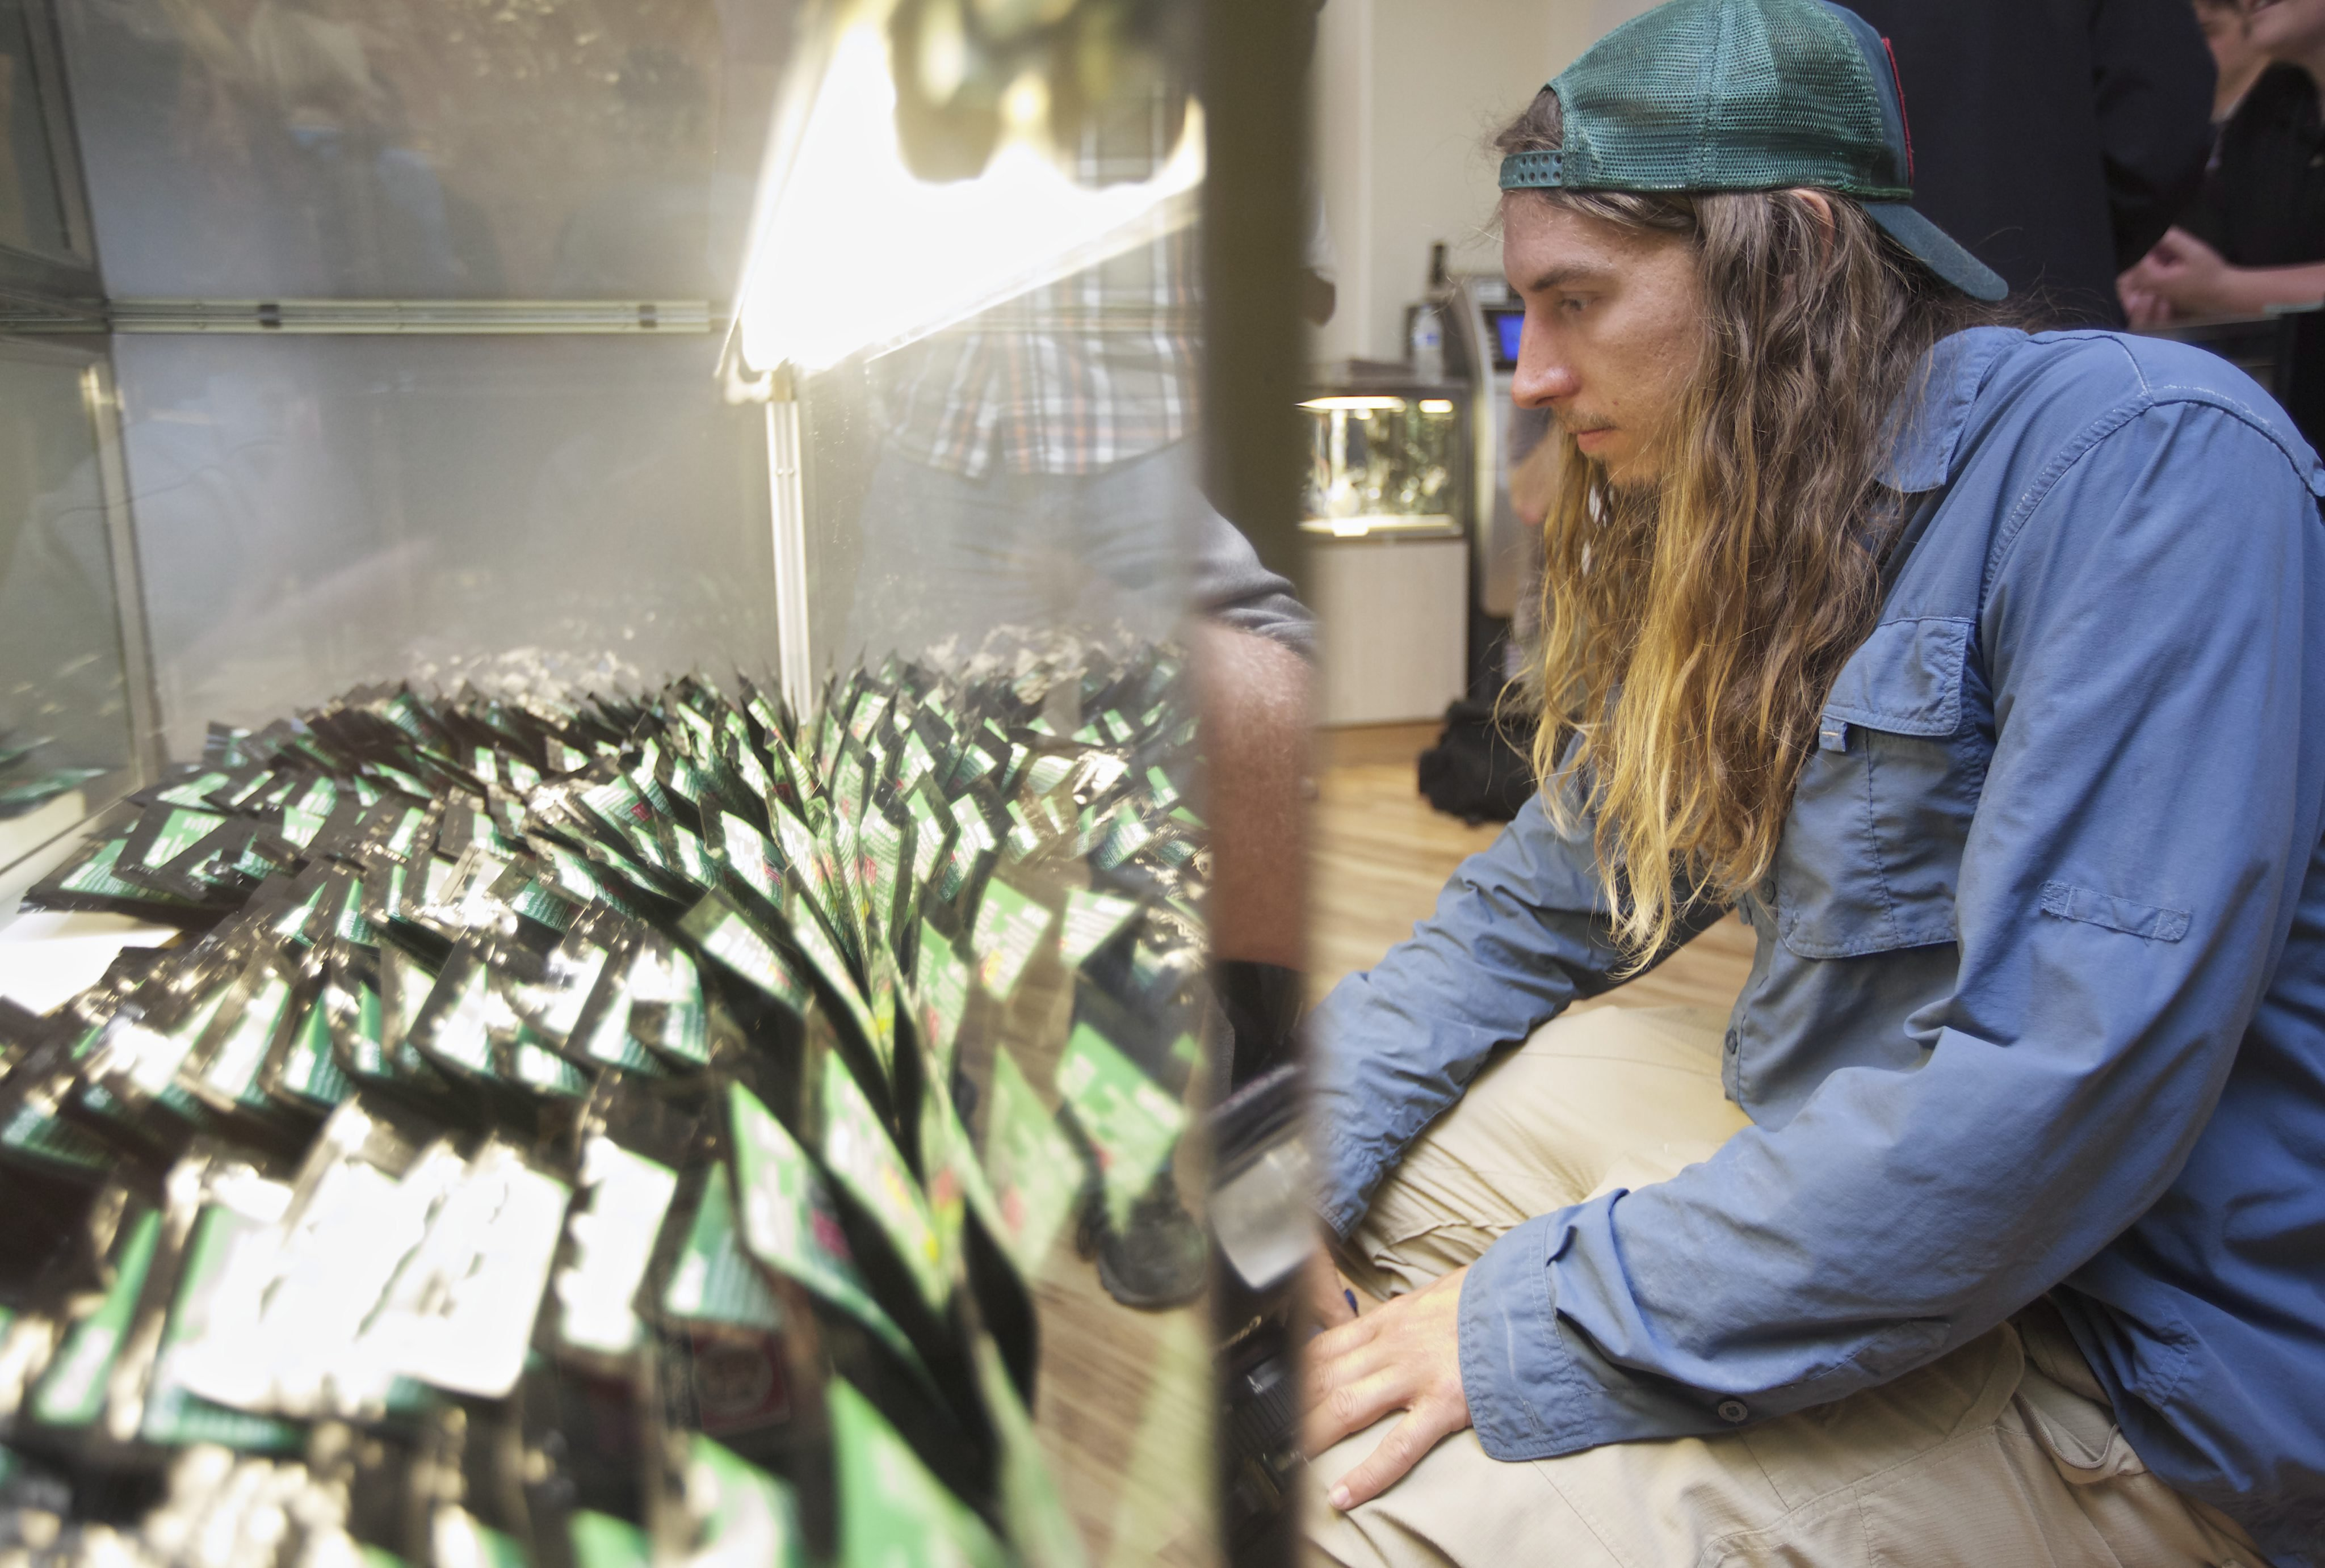 Ryan Hutchen of Columbia, S.C., looks at different cannabis strains at recreational marijuana store Cannabis City in Seattle on July 8, 2014.